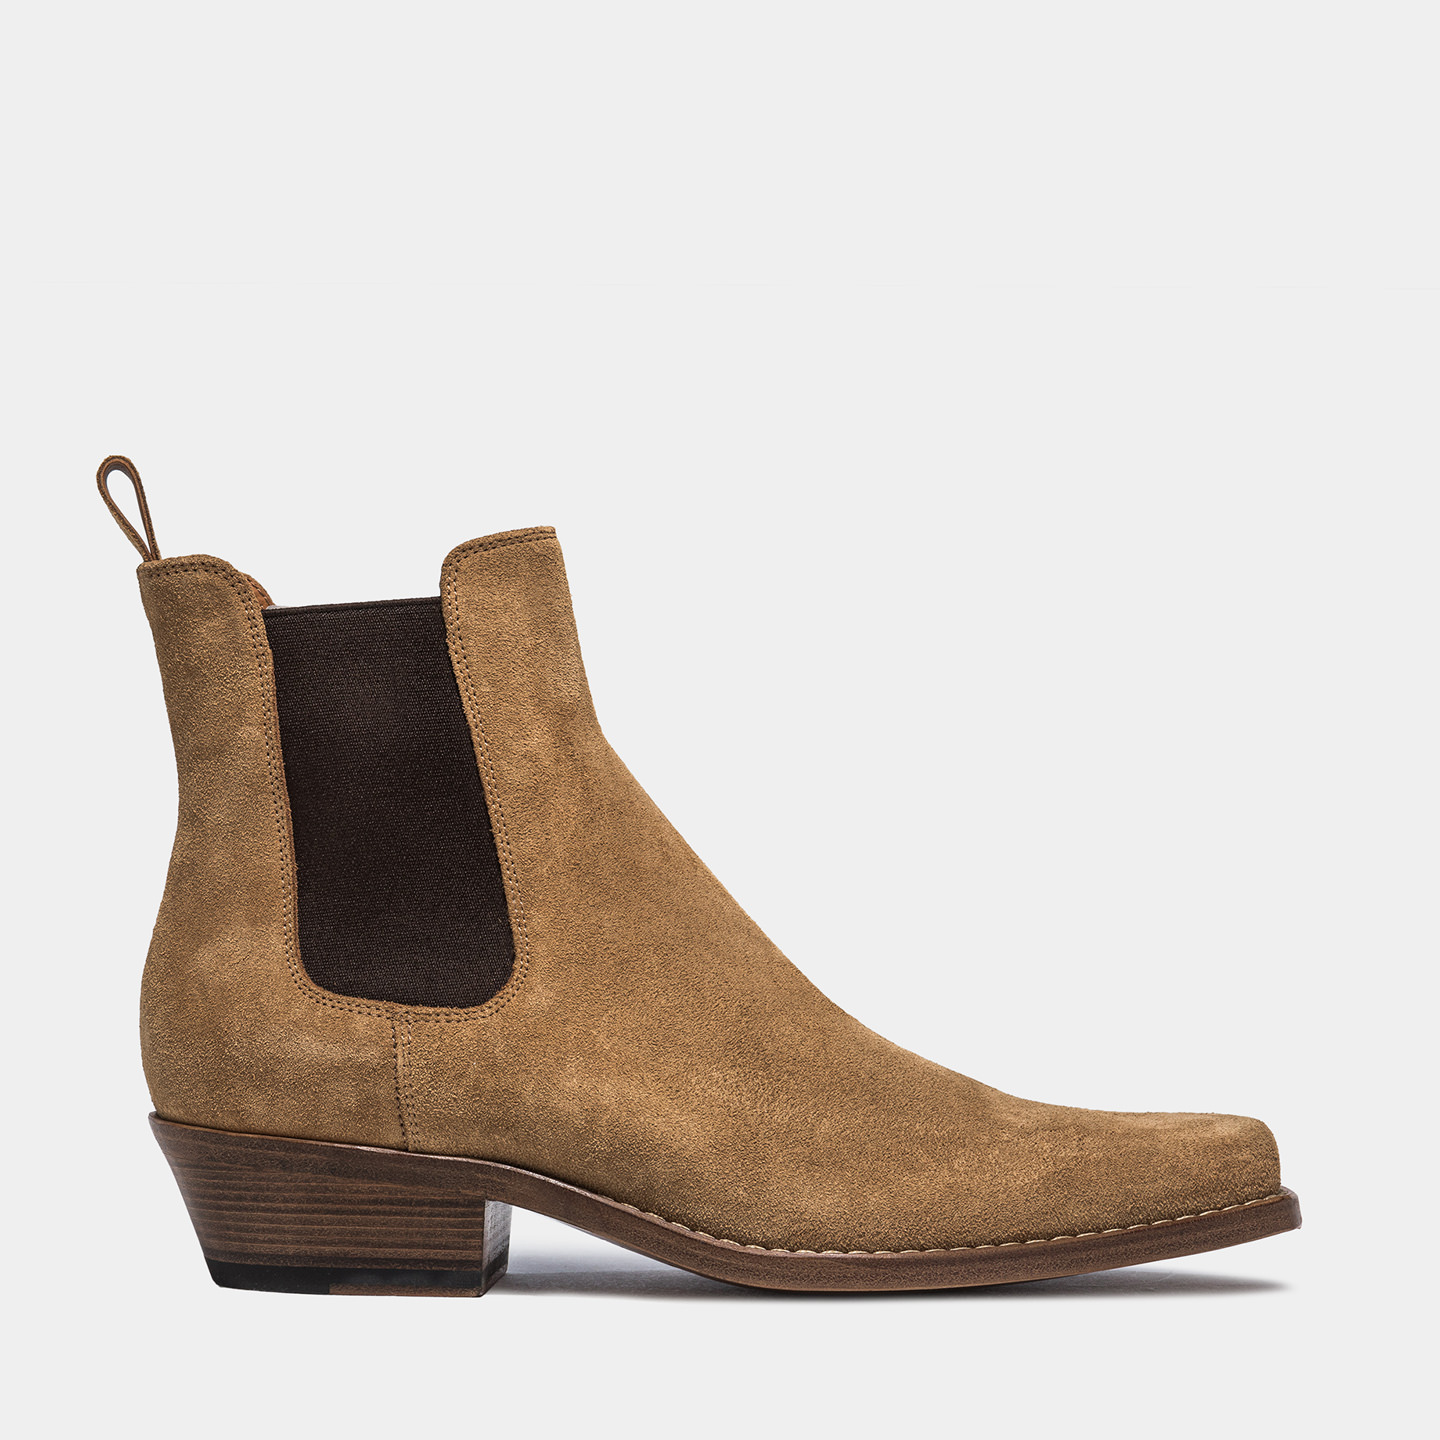 BUTTERO: DALTON BOOTS IN COPPER COLOR SUEDE